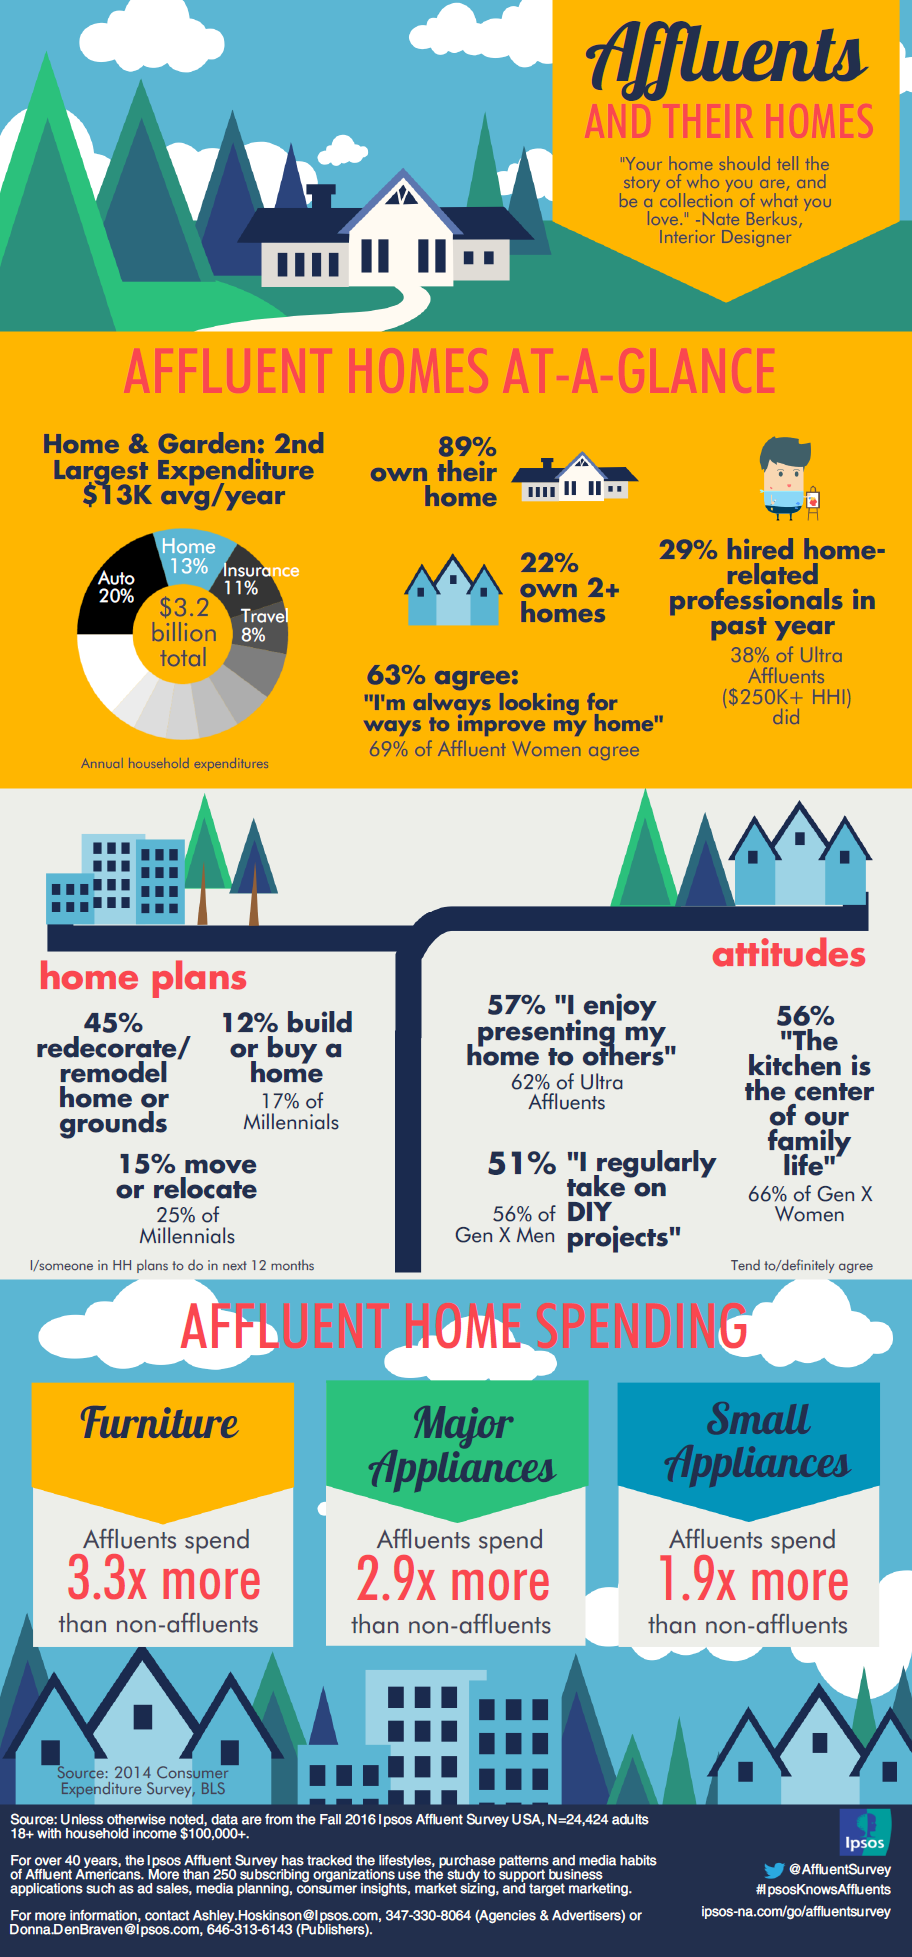 Infographic: Affluents and their homes